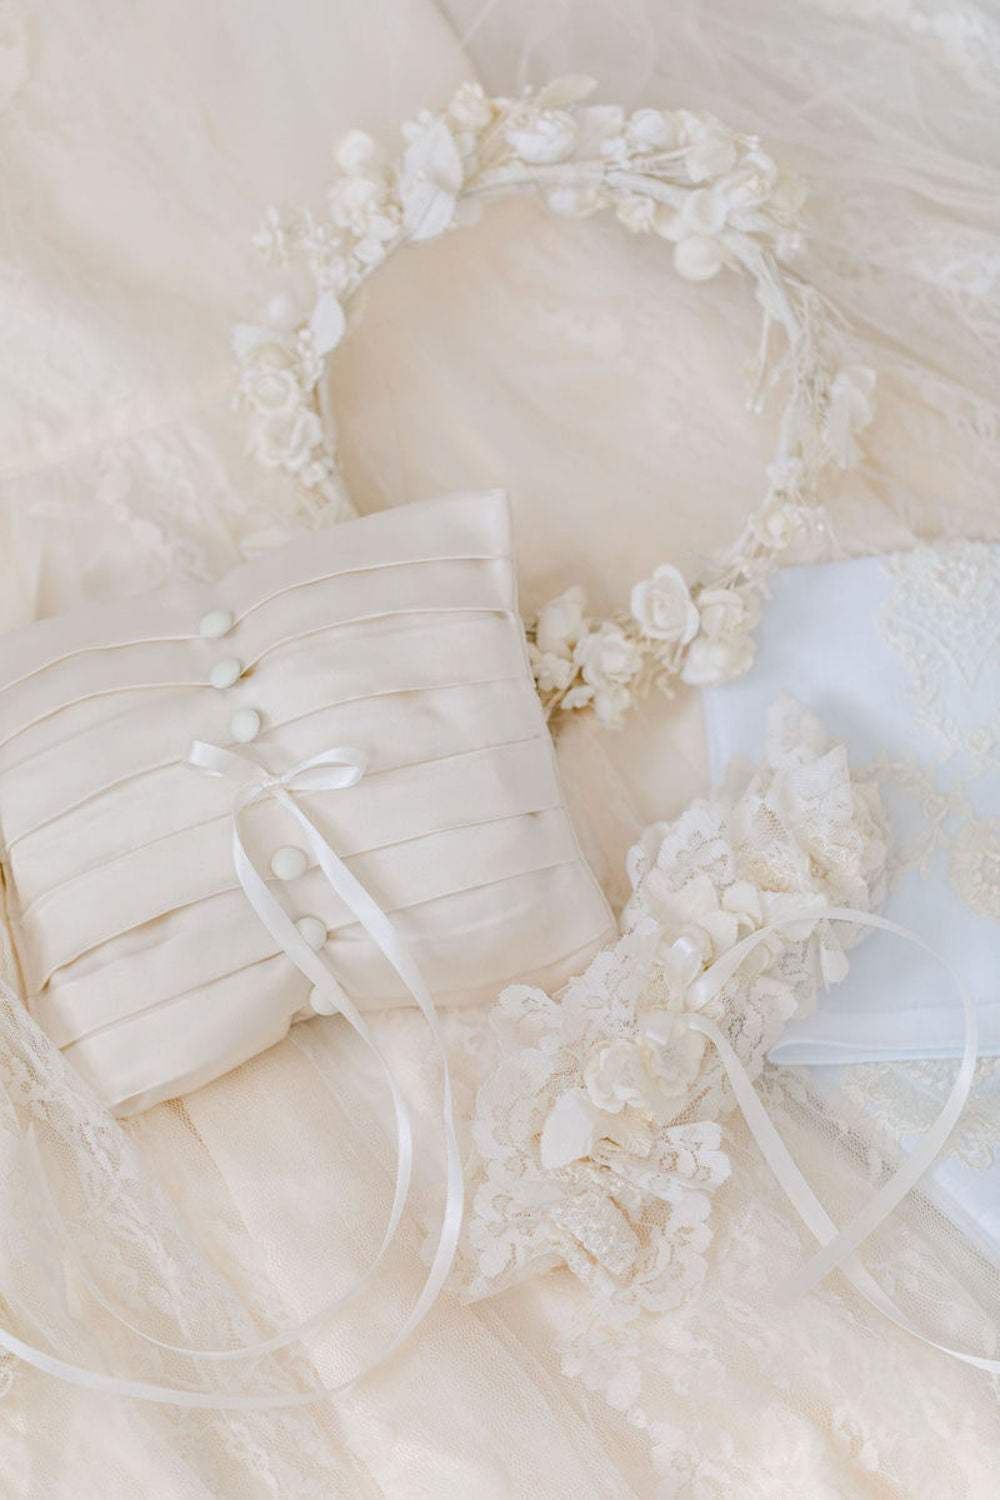 custom wedding garter heirloom and ring pillow made from mother's wedding dress by The Garter Girl